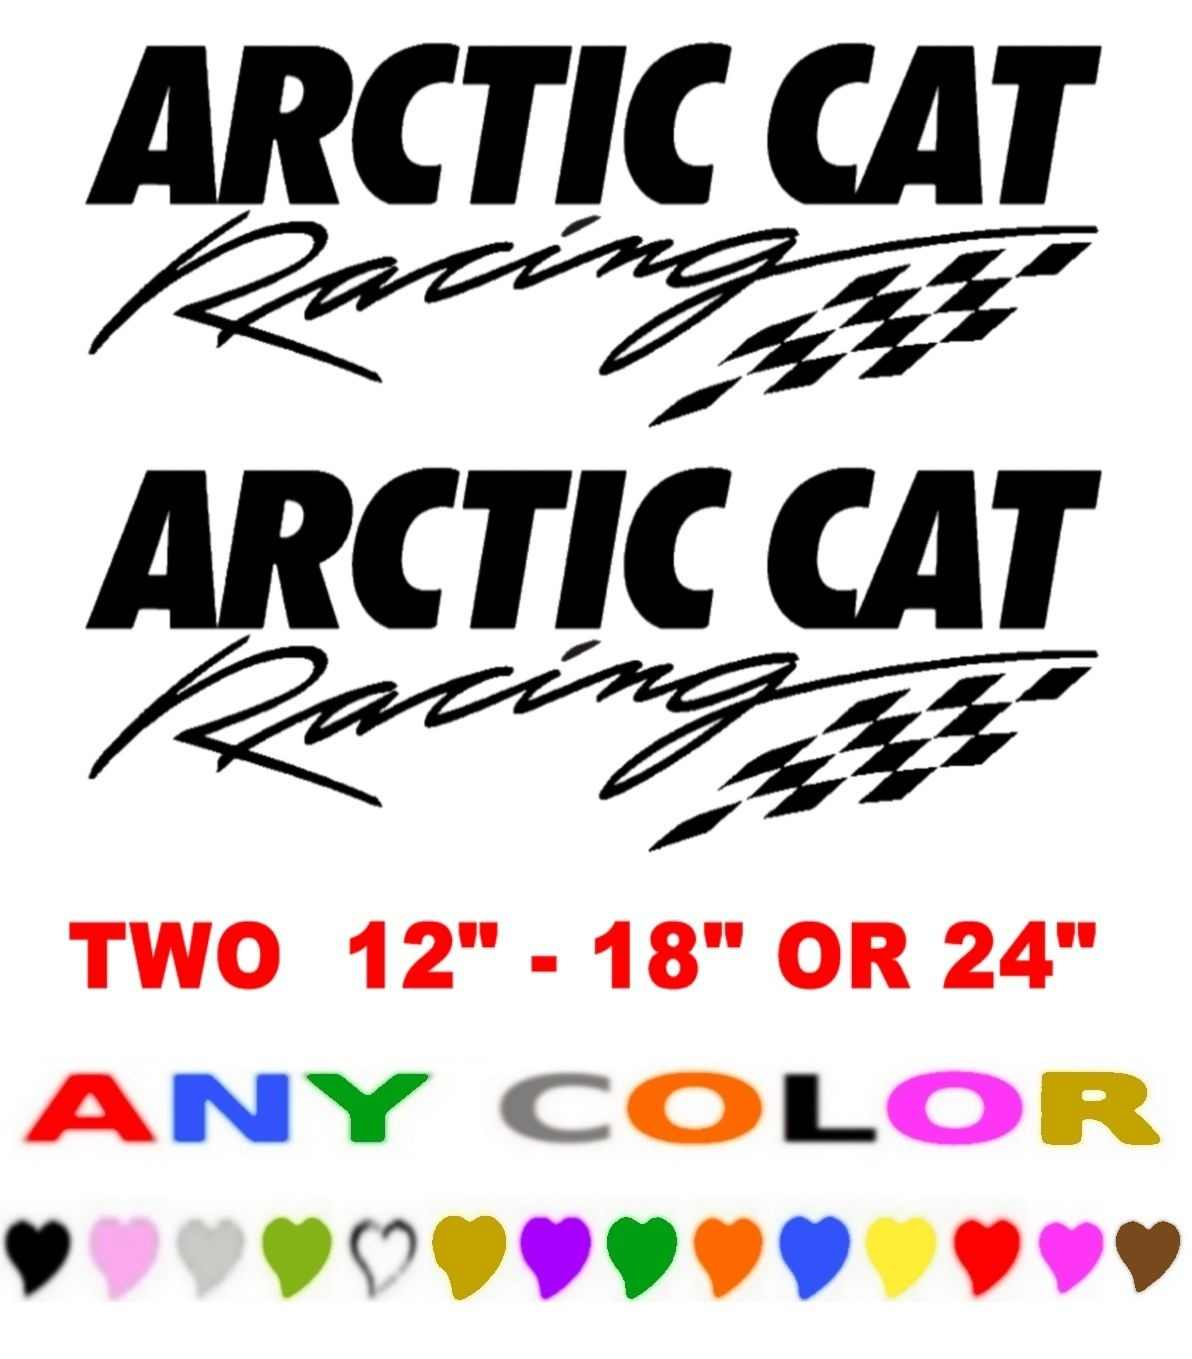 1Set ARCTIC CAT RACING STICKERS DECALS ANY COLOR ANY SIZE SNOWMOBILE QUAD SLED 4X4